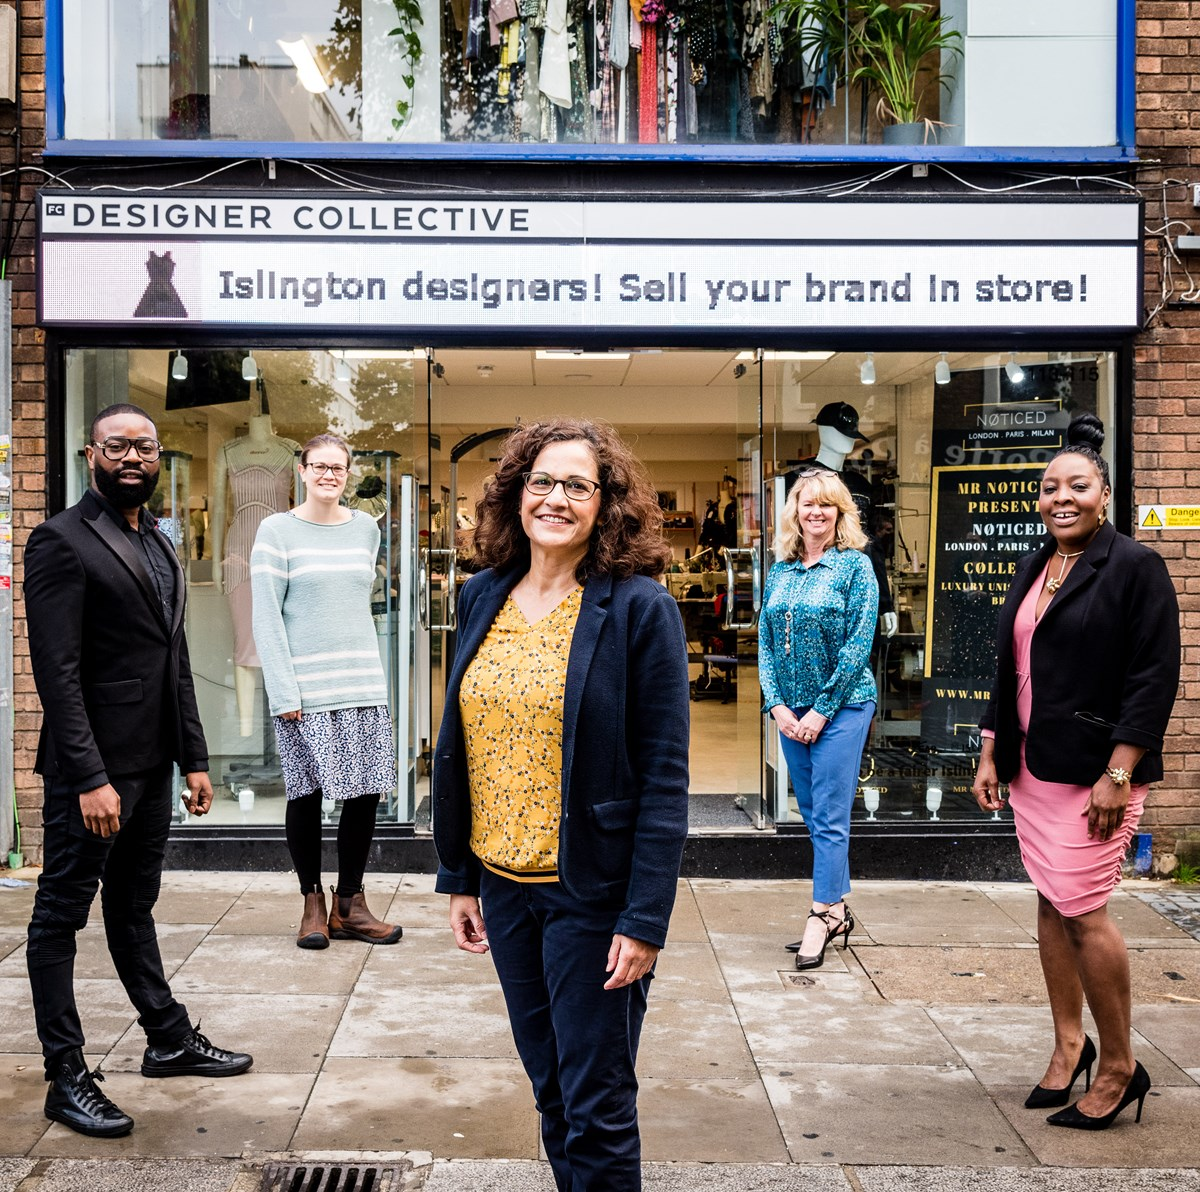 Outside the FC Designer Collective store,(from left) Boaz Otudeko, Sarah Hill, Cllr Asima Shaikh, Fashion-Enter CEO Jenny Holloway and Tricia Blake